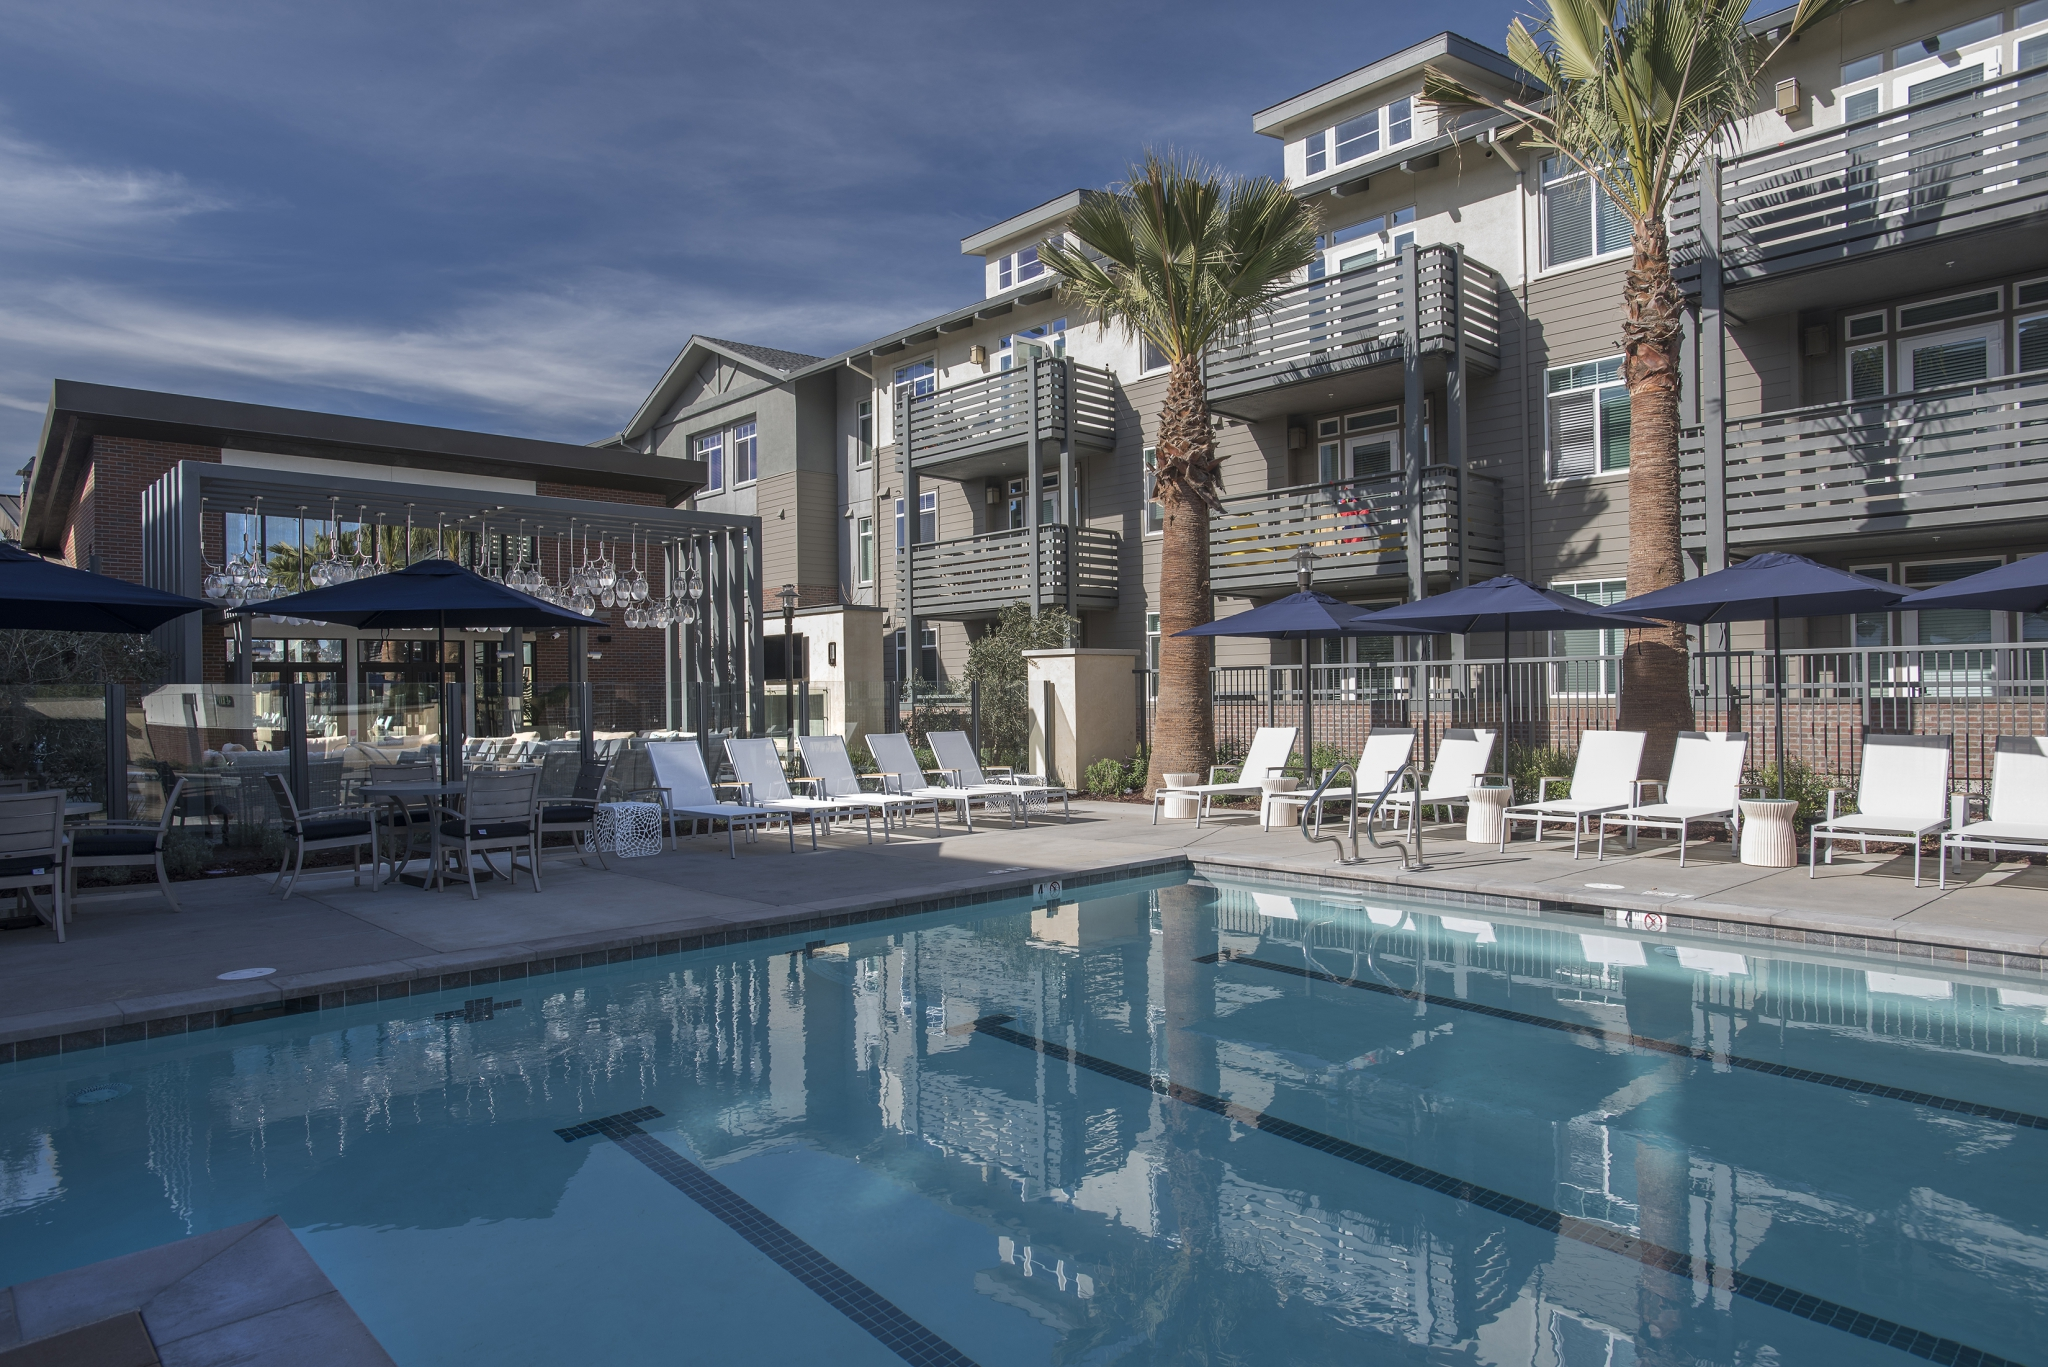 Exterior of pool with lounge chairs and umbrellas with 3-story apartment building with balconies in the background